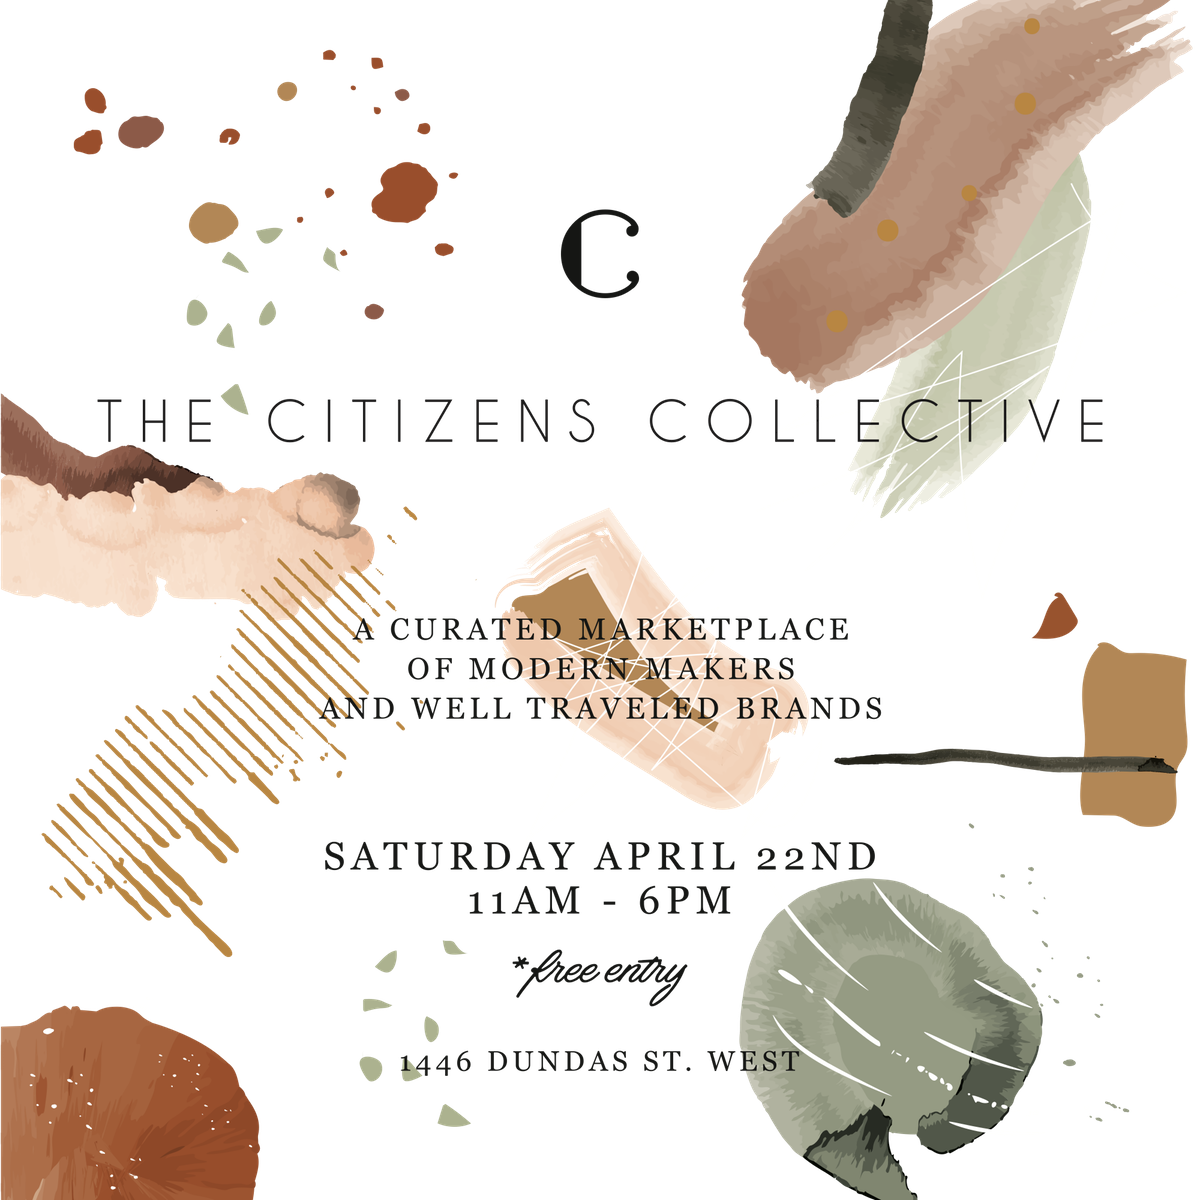 The Citizens Collective Brand